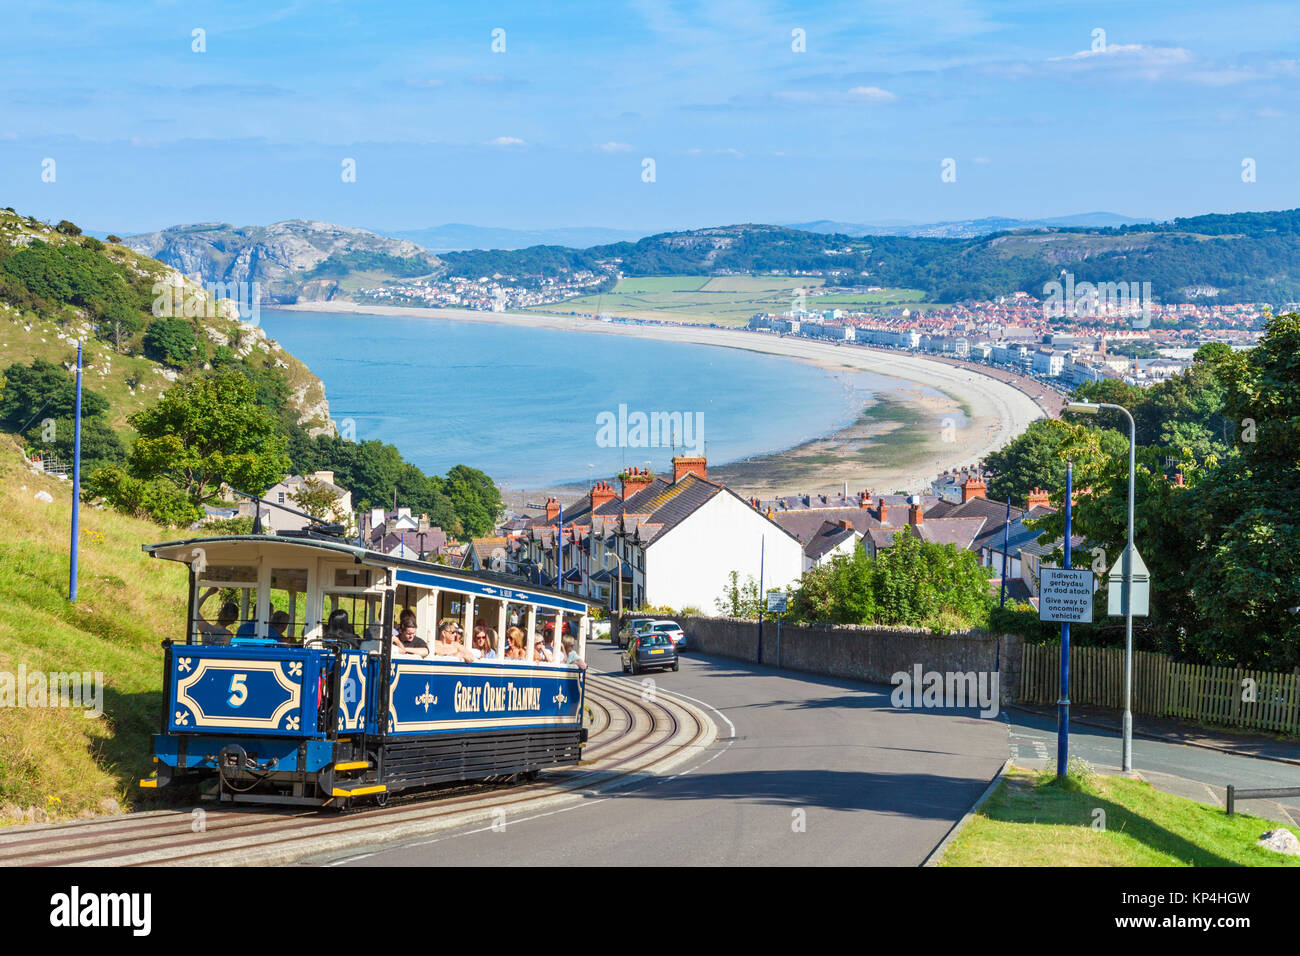 north wales llandudno north wales Llandudno view of Llandudno bay with tram train of the great orme tramway going Stock Photo